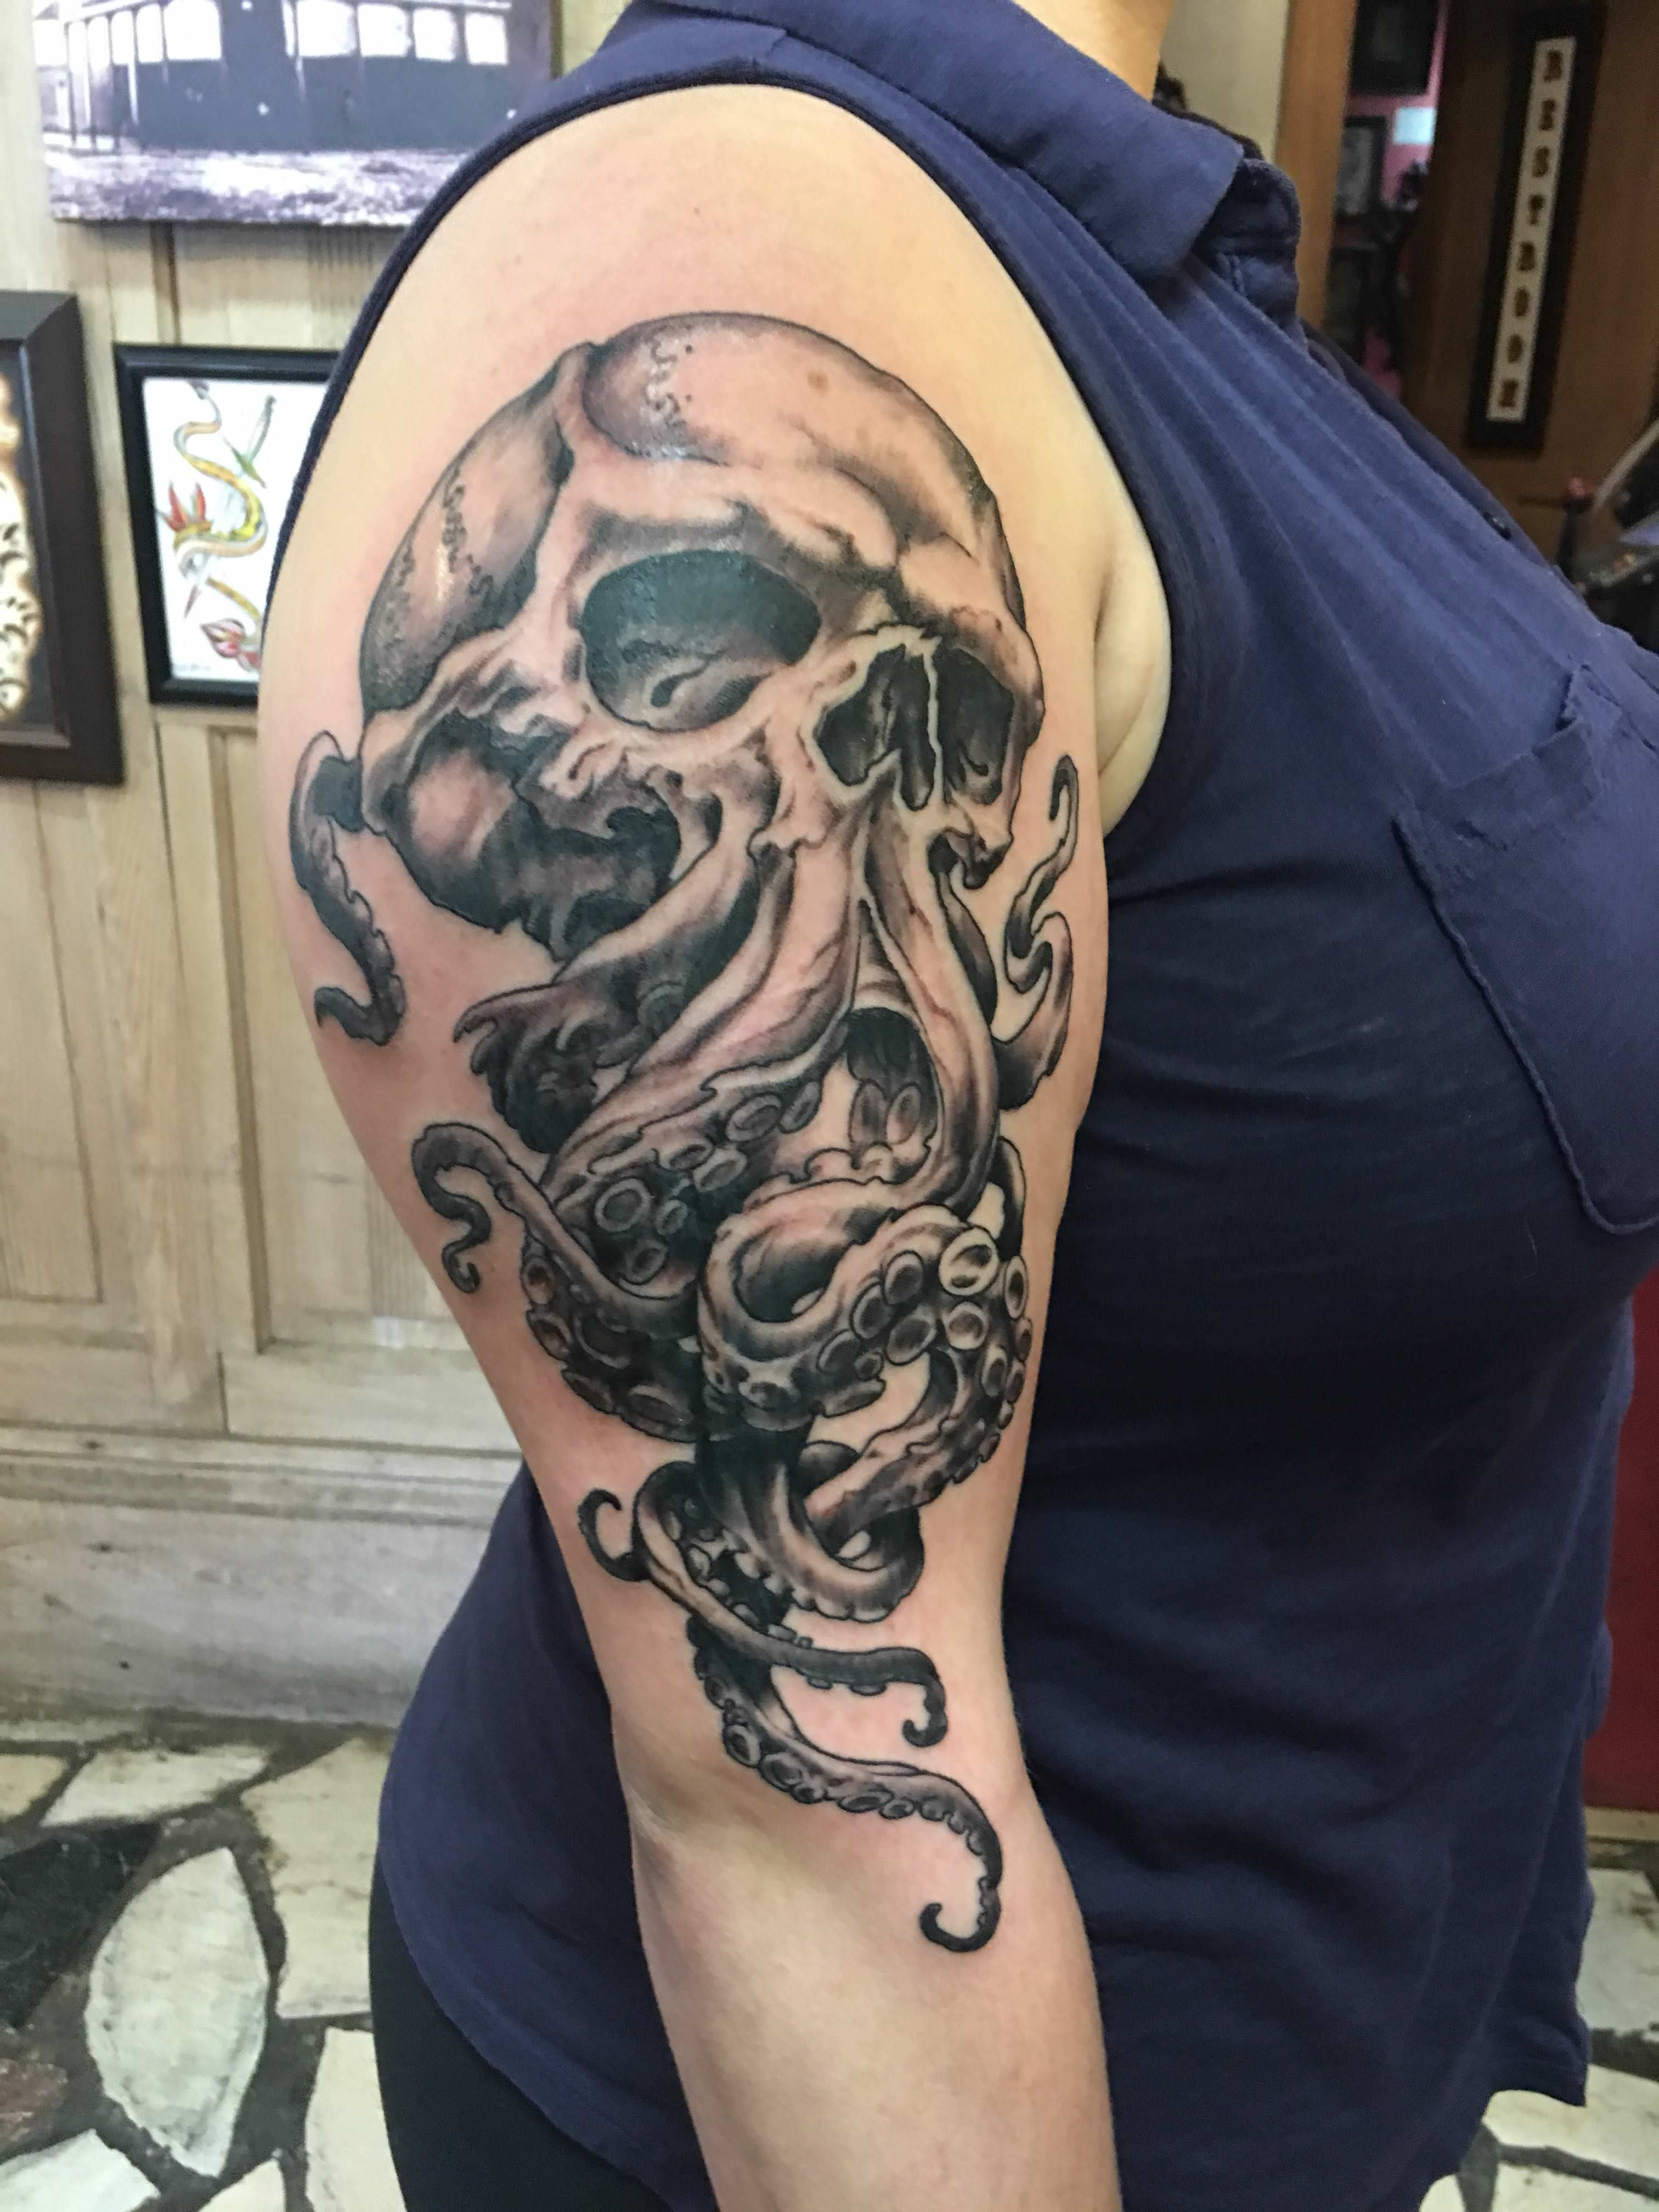 Cthulhu Done By Henry In New Orleans At Downtown Tattoo